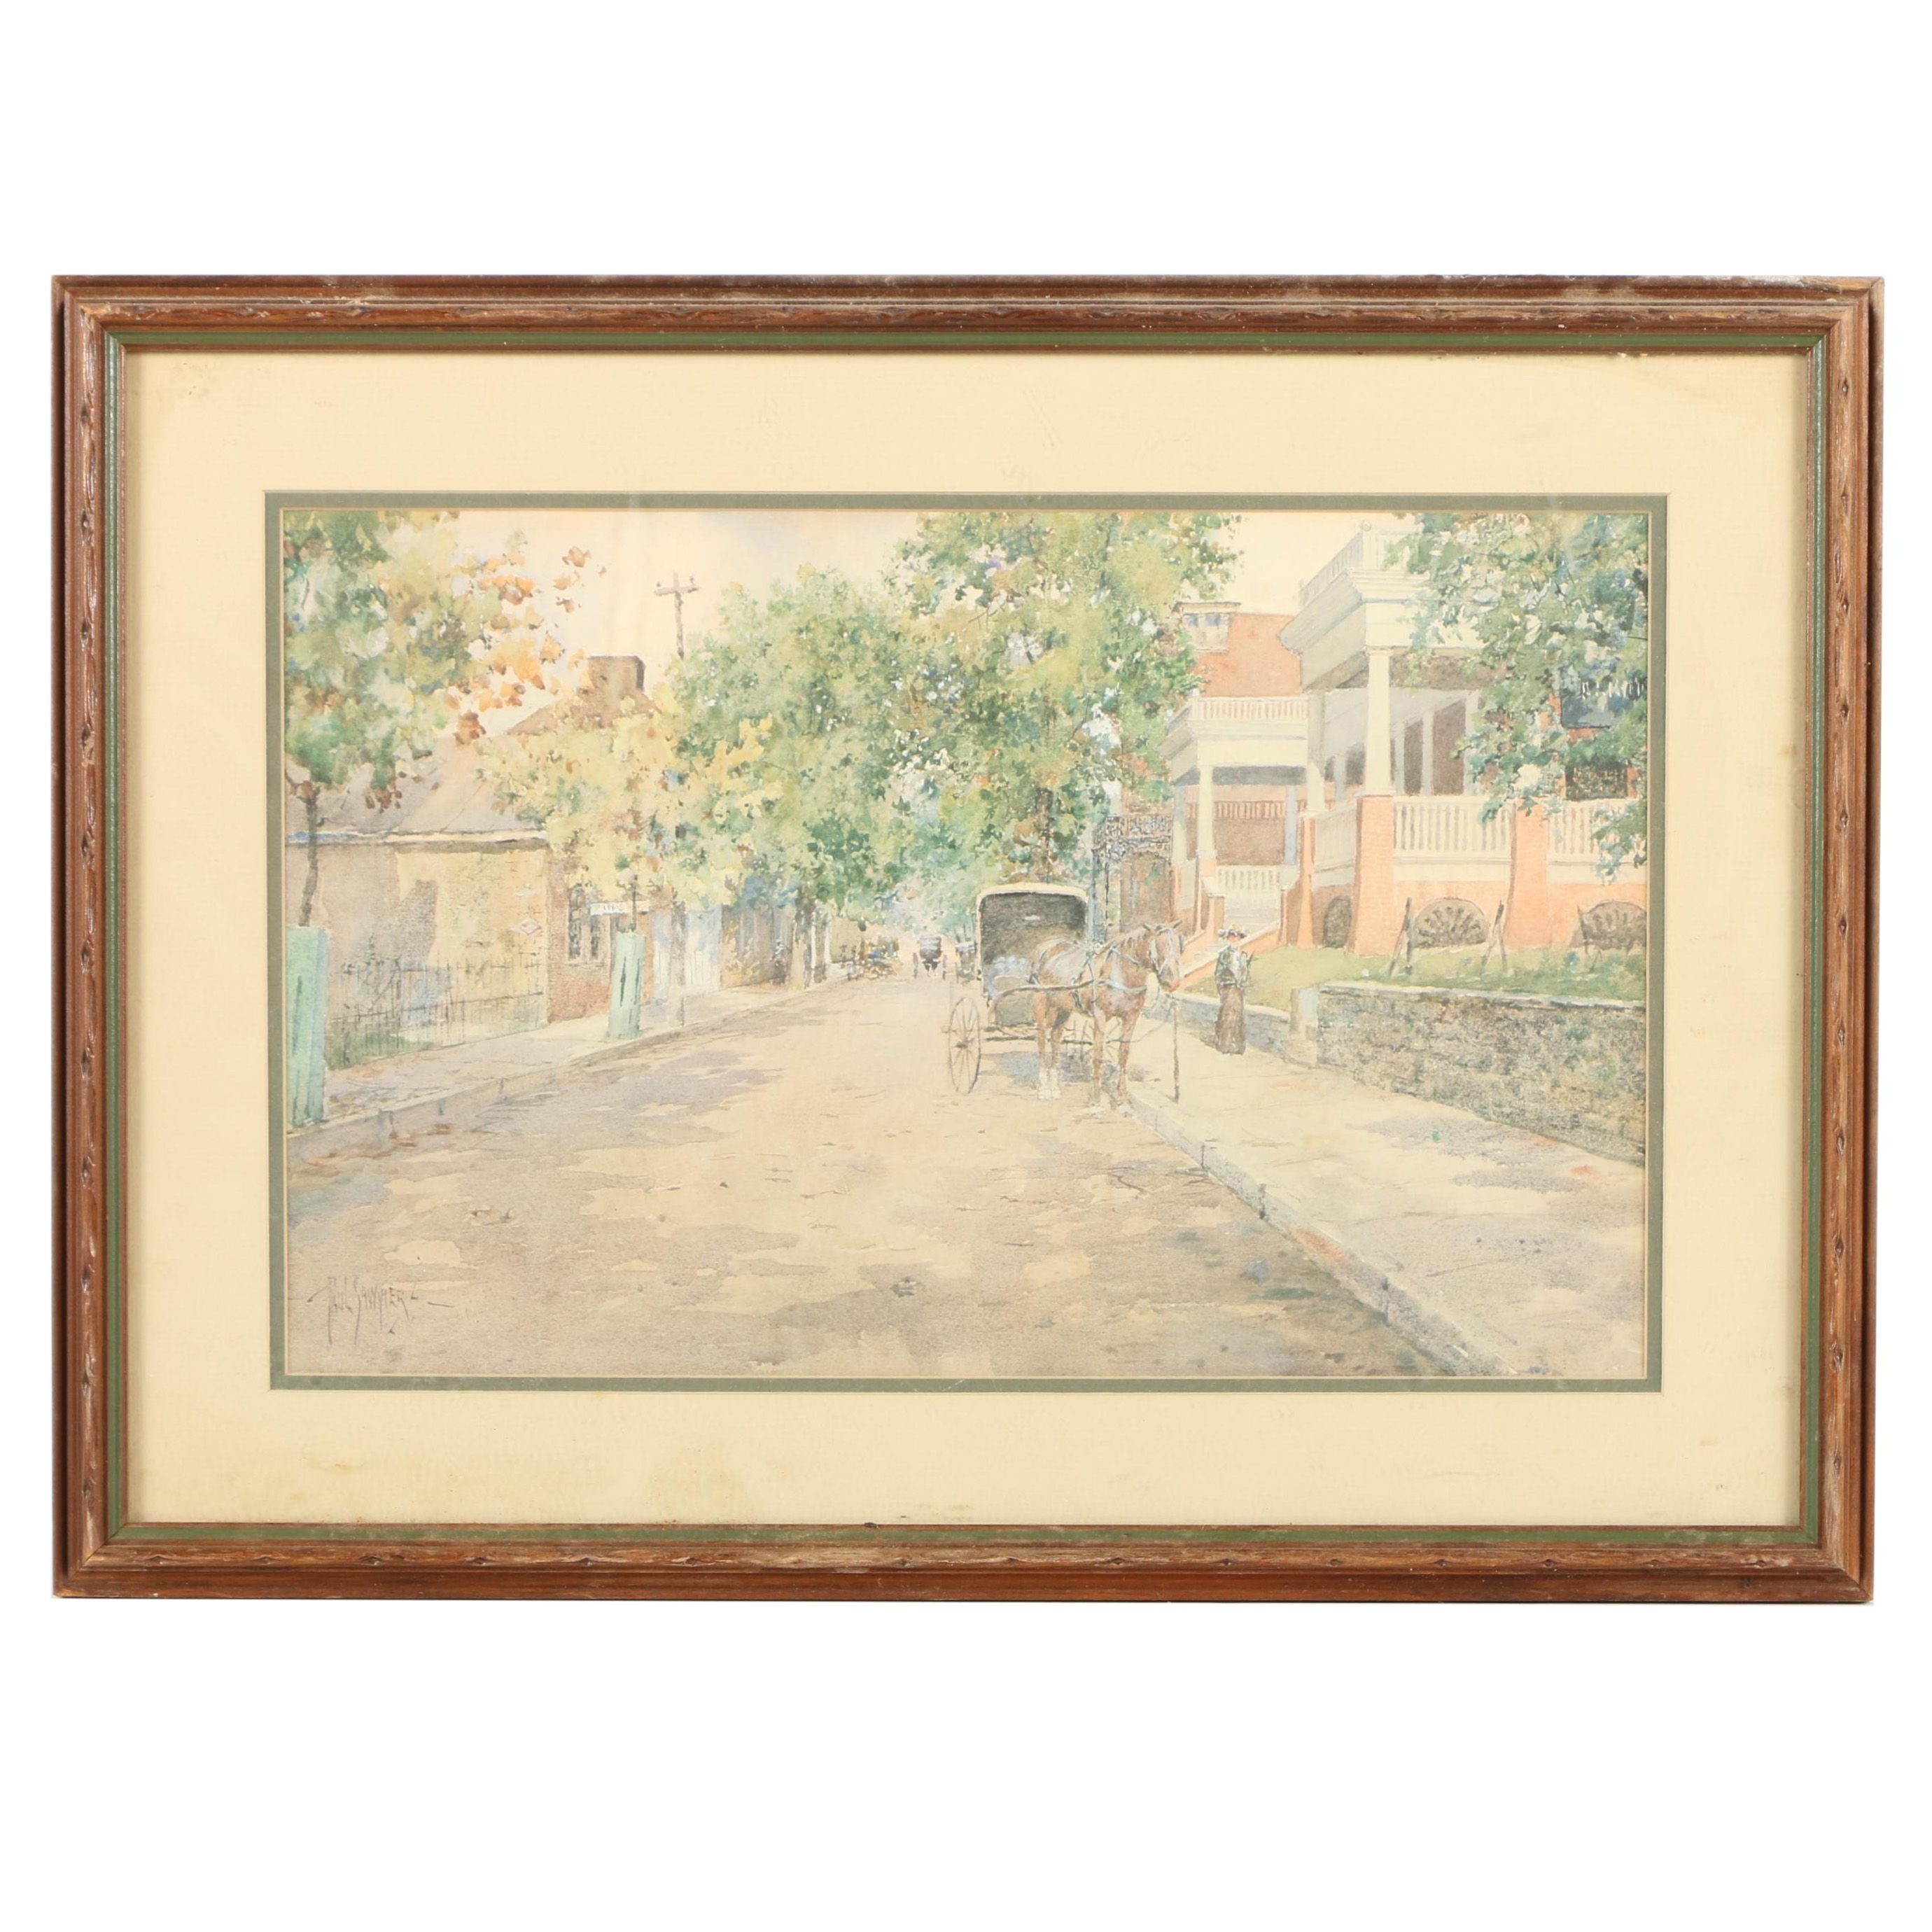 Offset Lithograph Print on Paper After Paul Sawyier Historic Street Scene